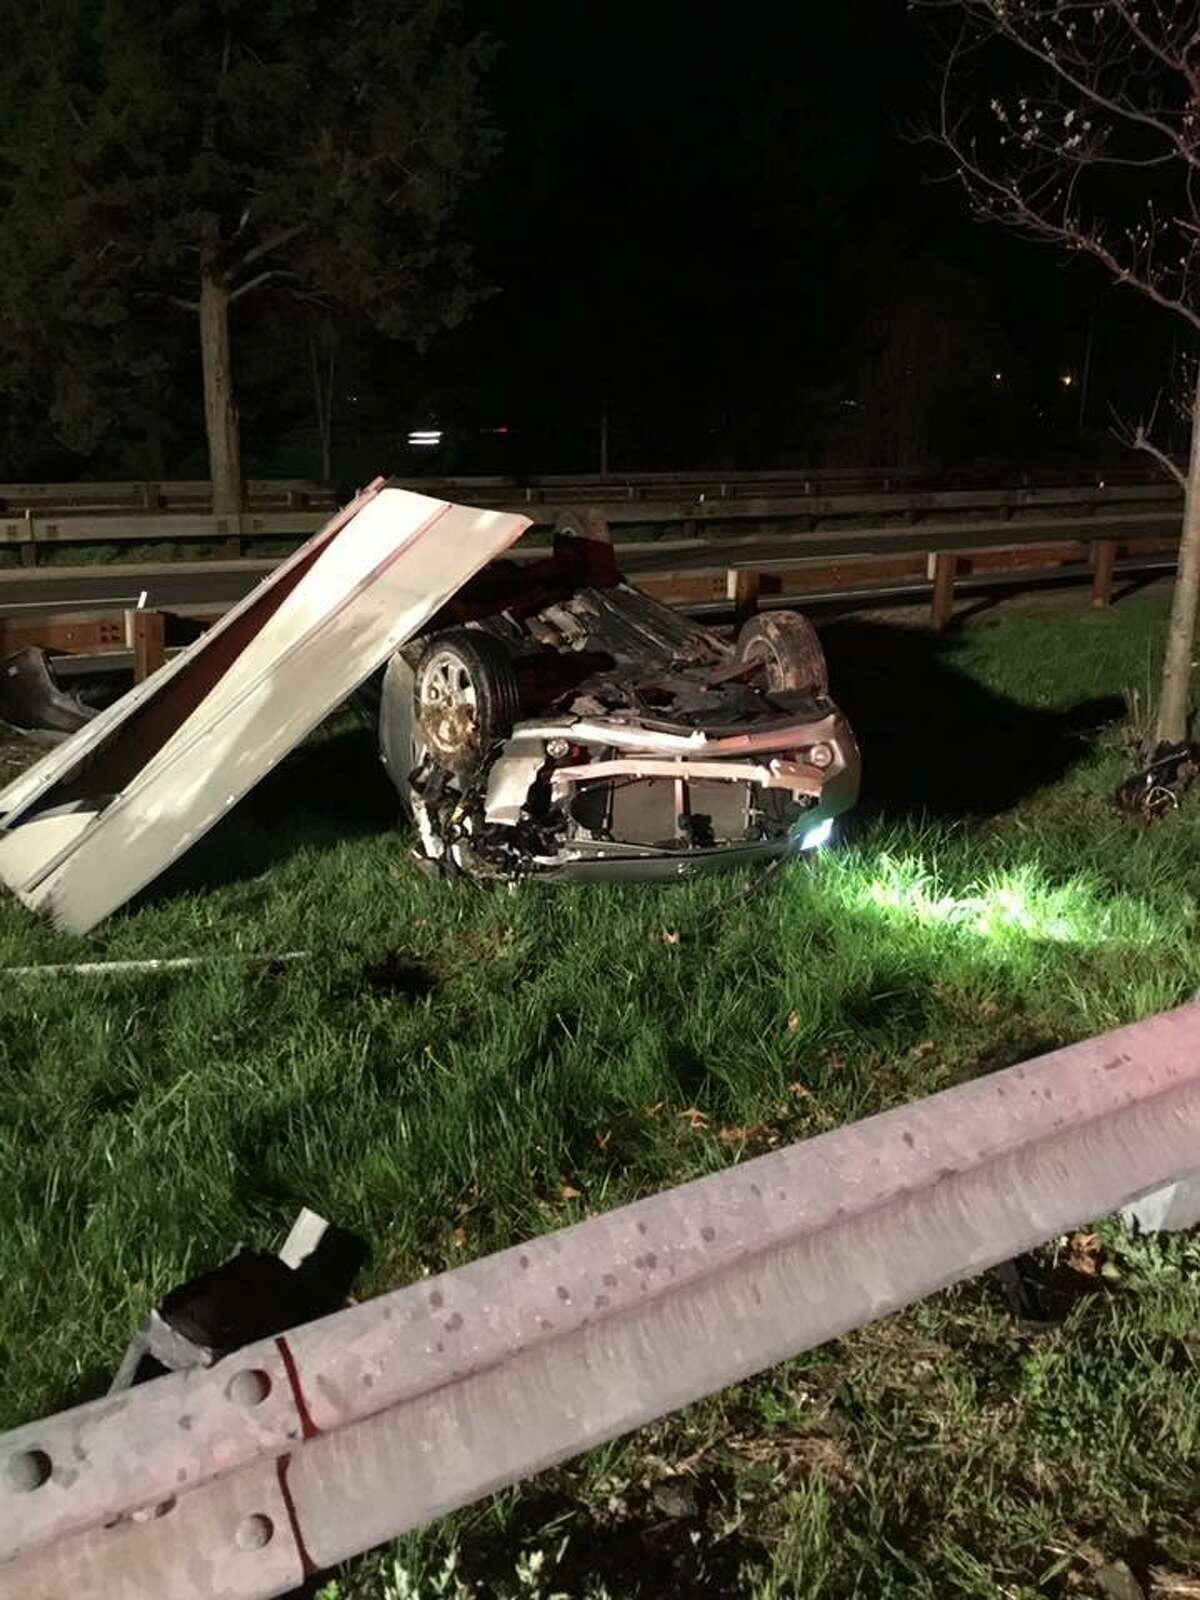 A car struck a guardrail and rolled over on Route 25 on Tuesday, April 23, 2019 in Trumbull. When Trumbull Volunteer Fire Company firefighters arrived they found all the occupants were out of the vehicle.